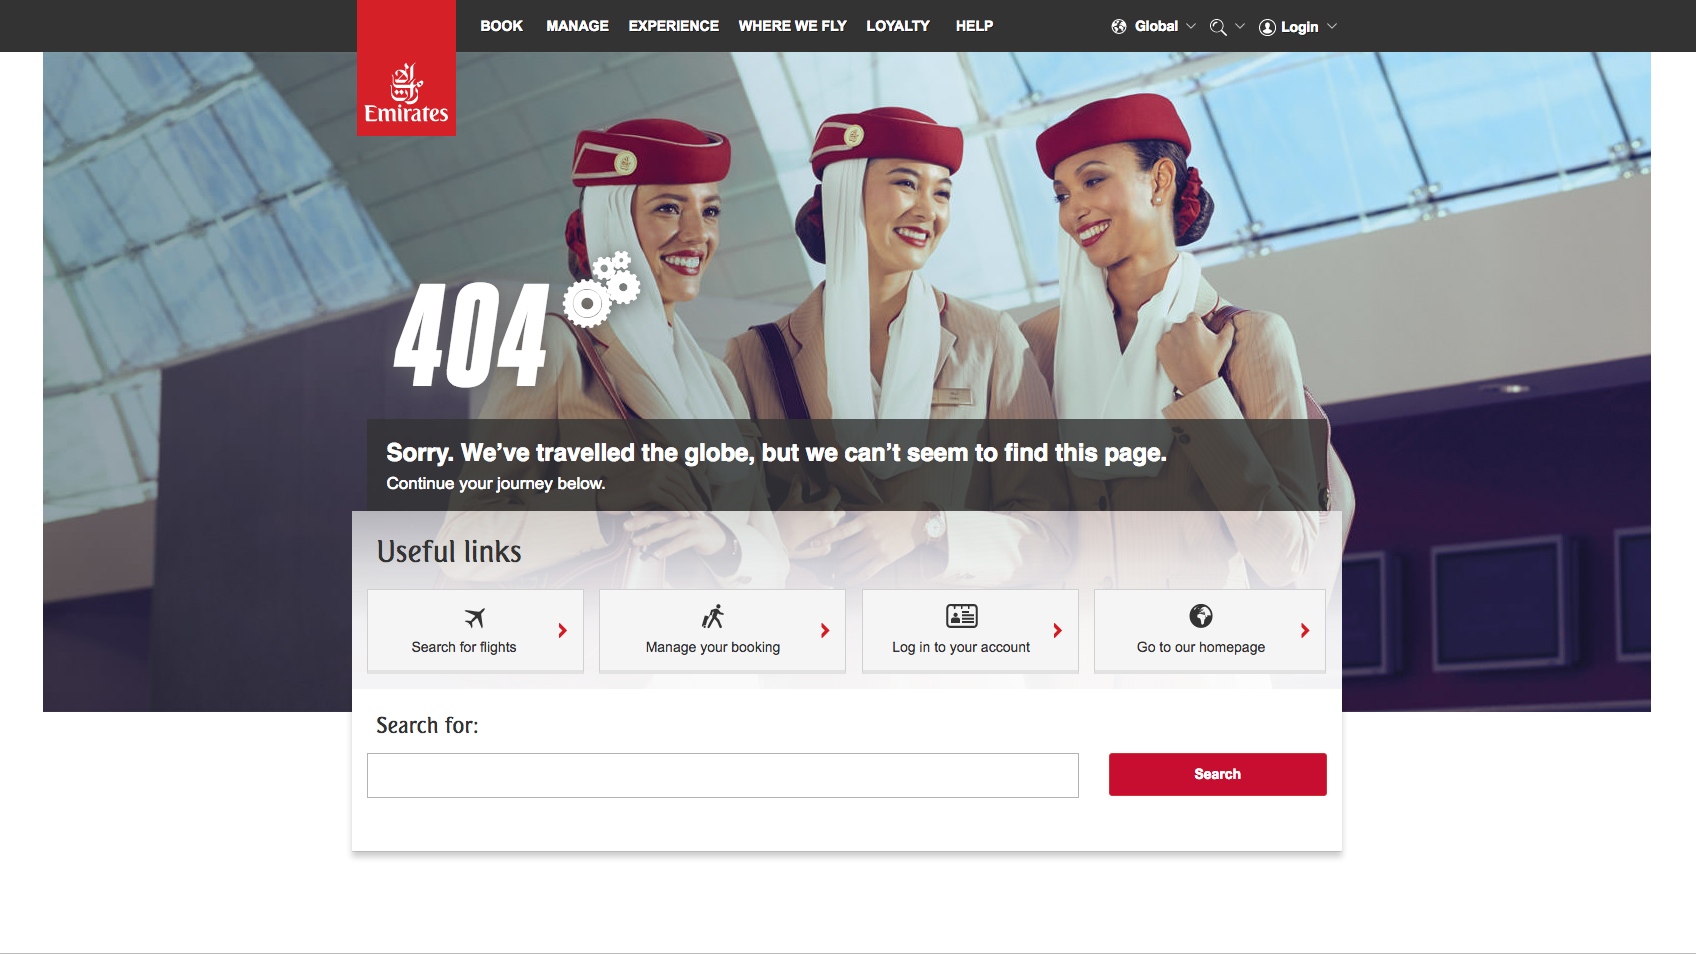 emirates 404 page